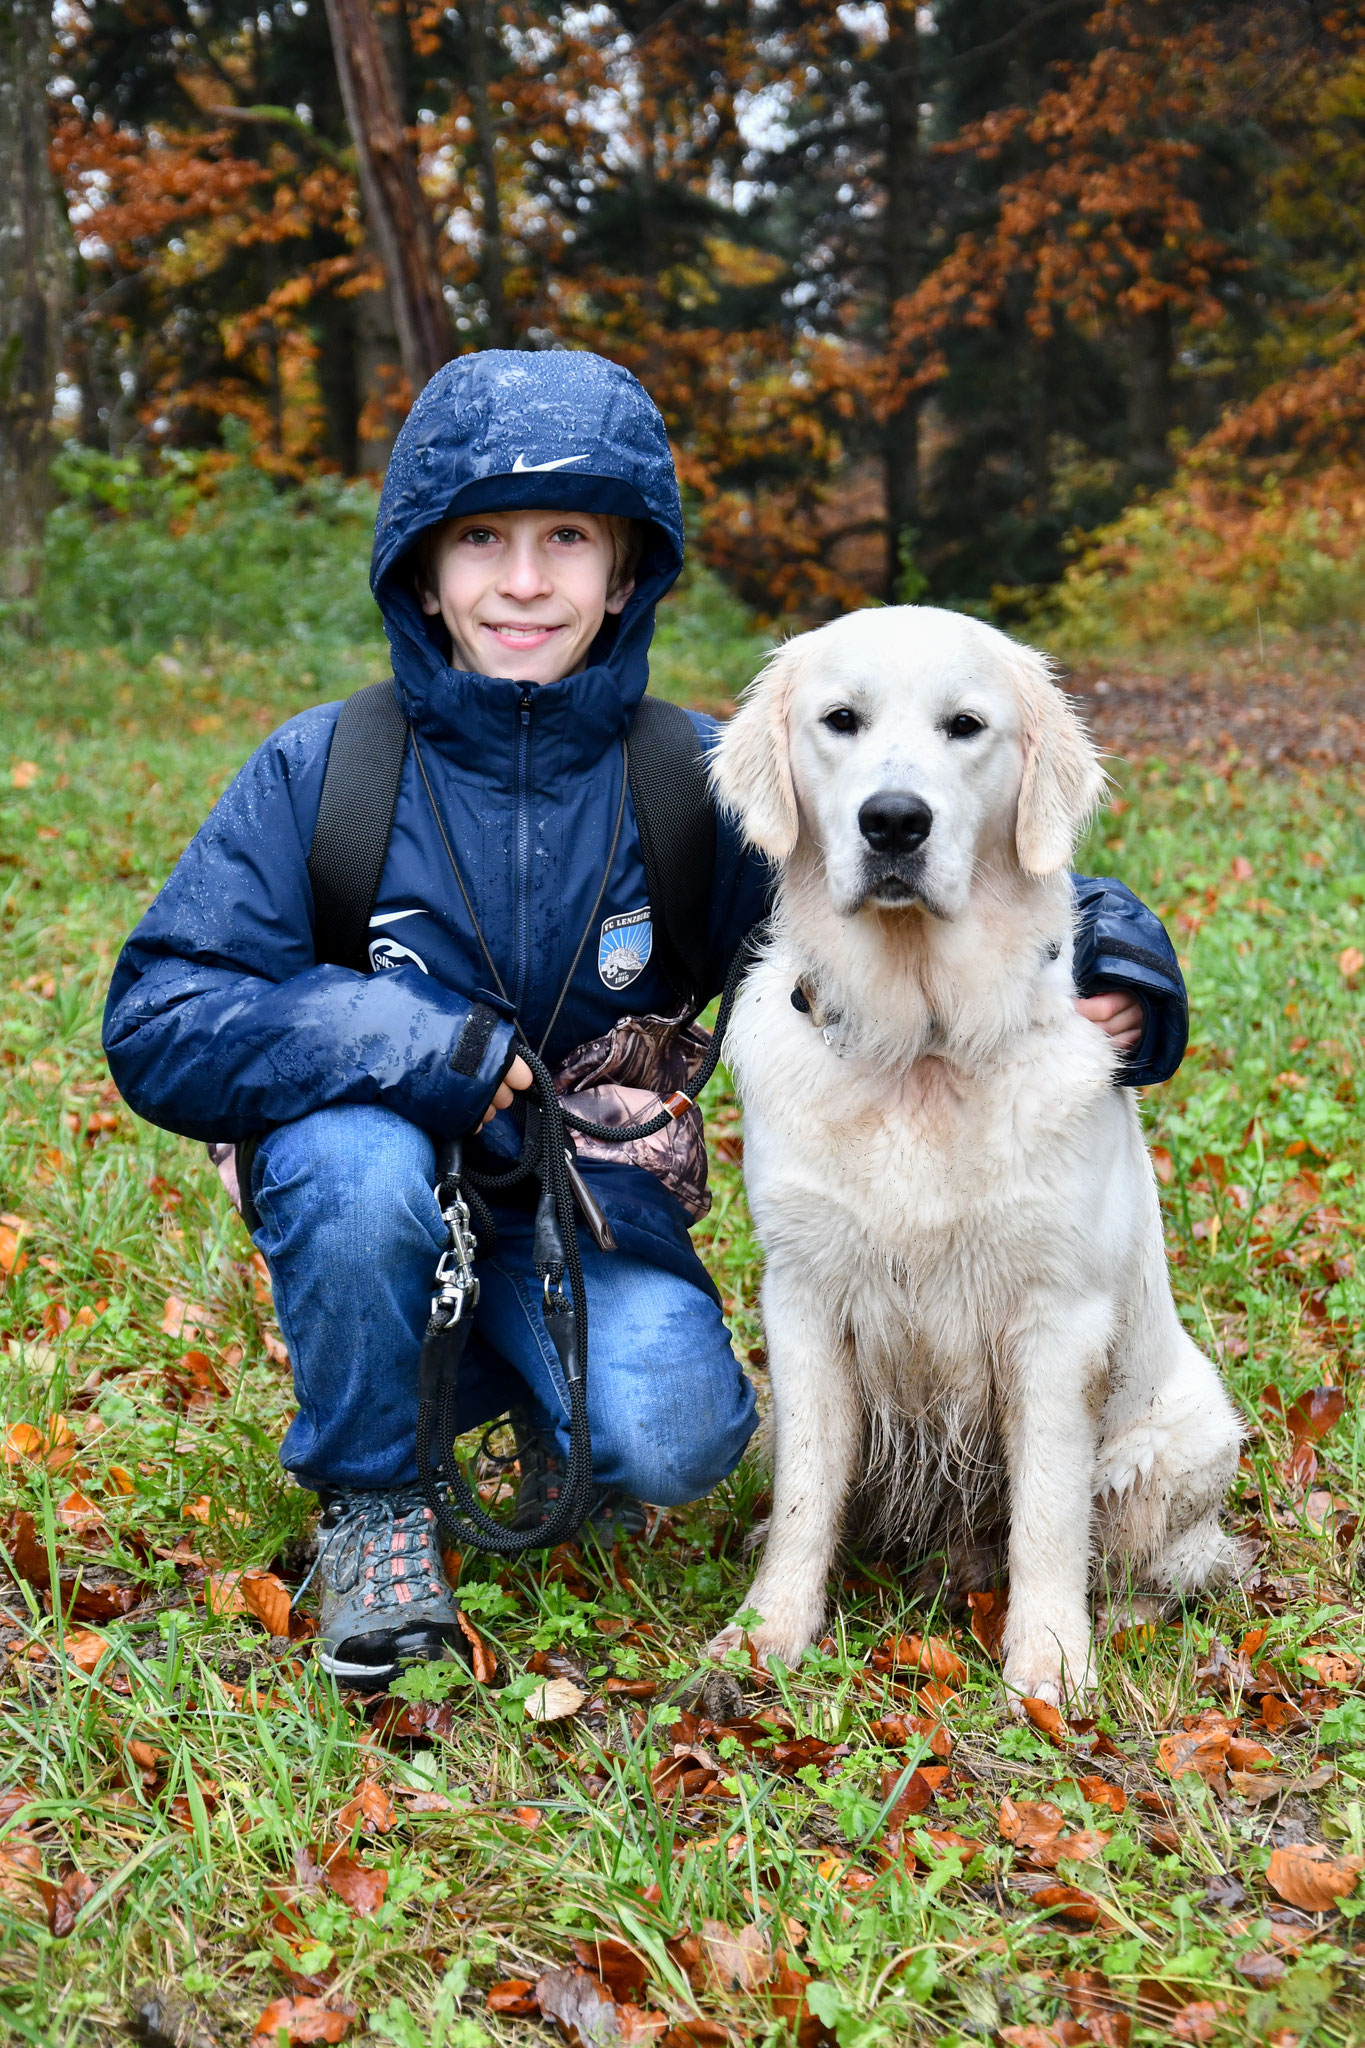 Youth Retriever Working Day auf der Indian Summer Ranch in Schinznach Dorf